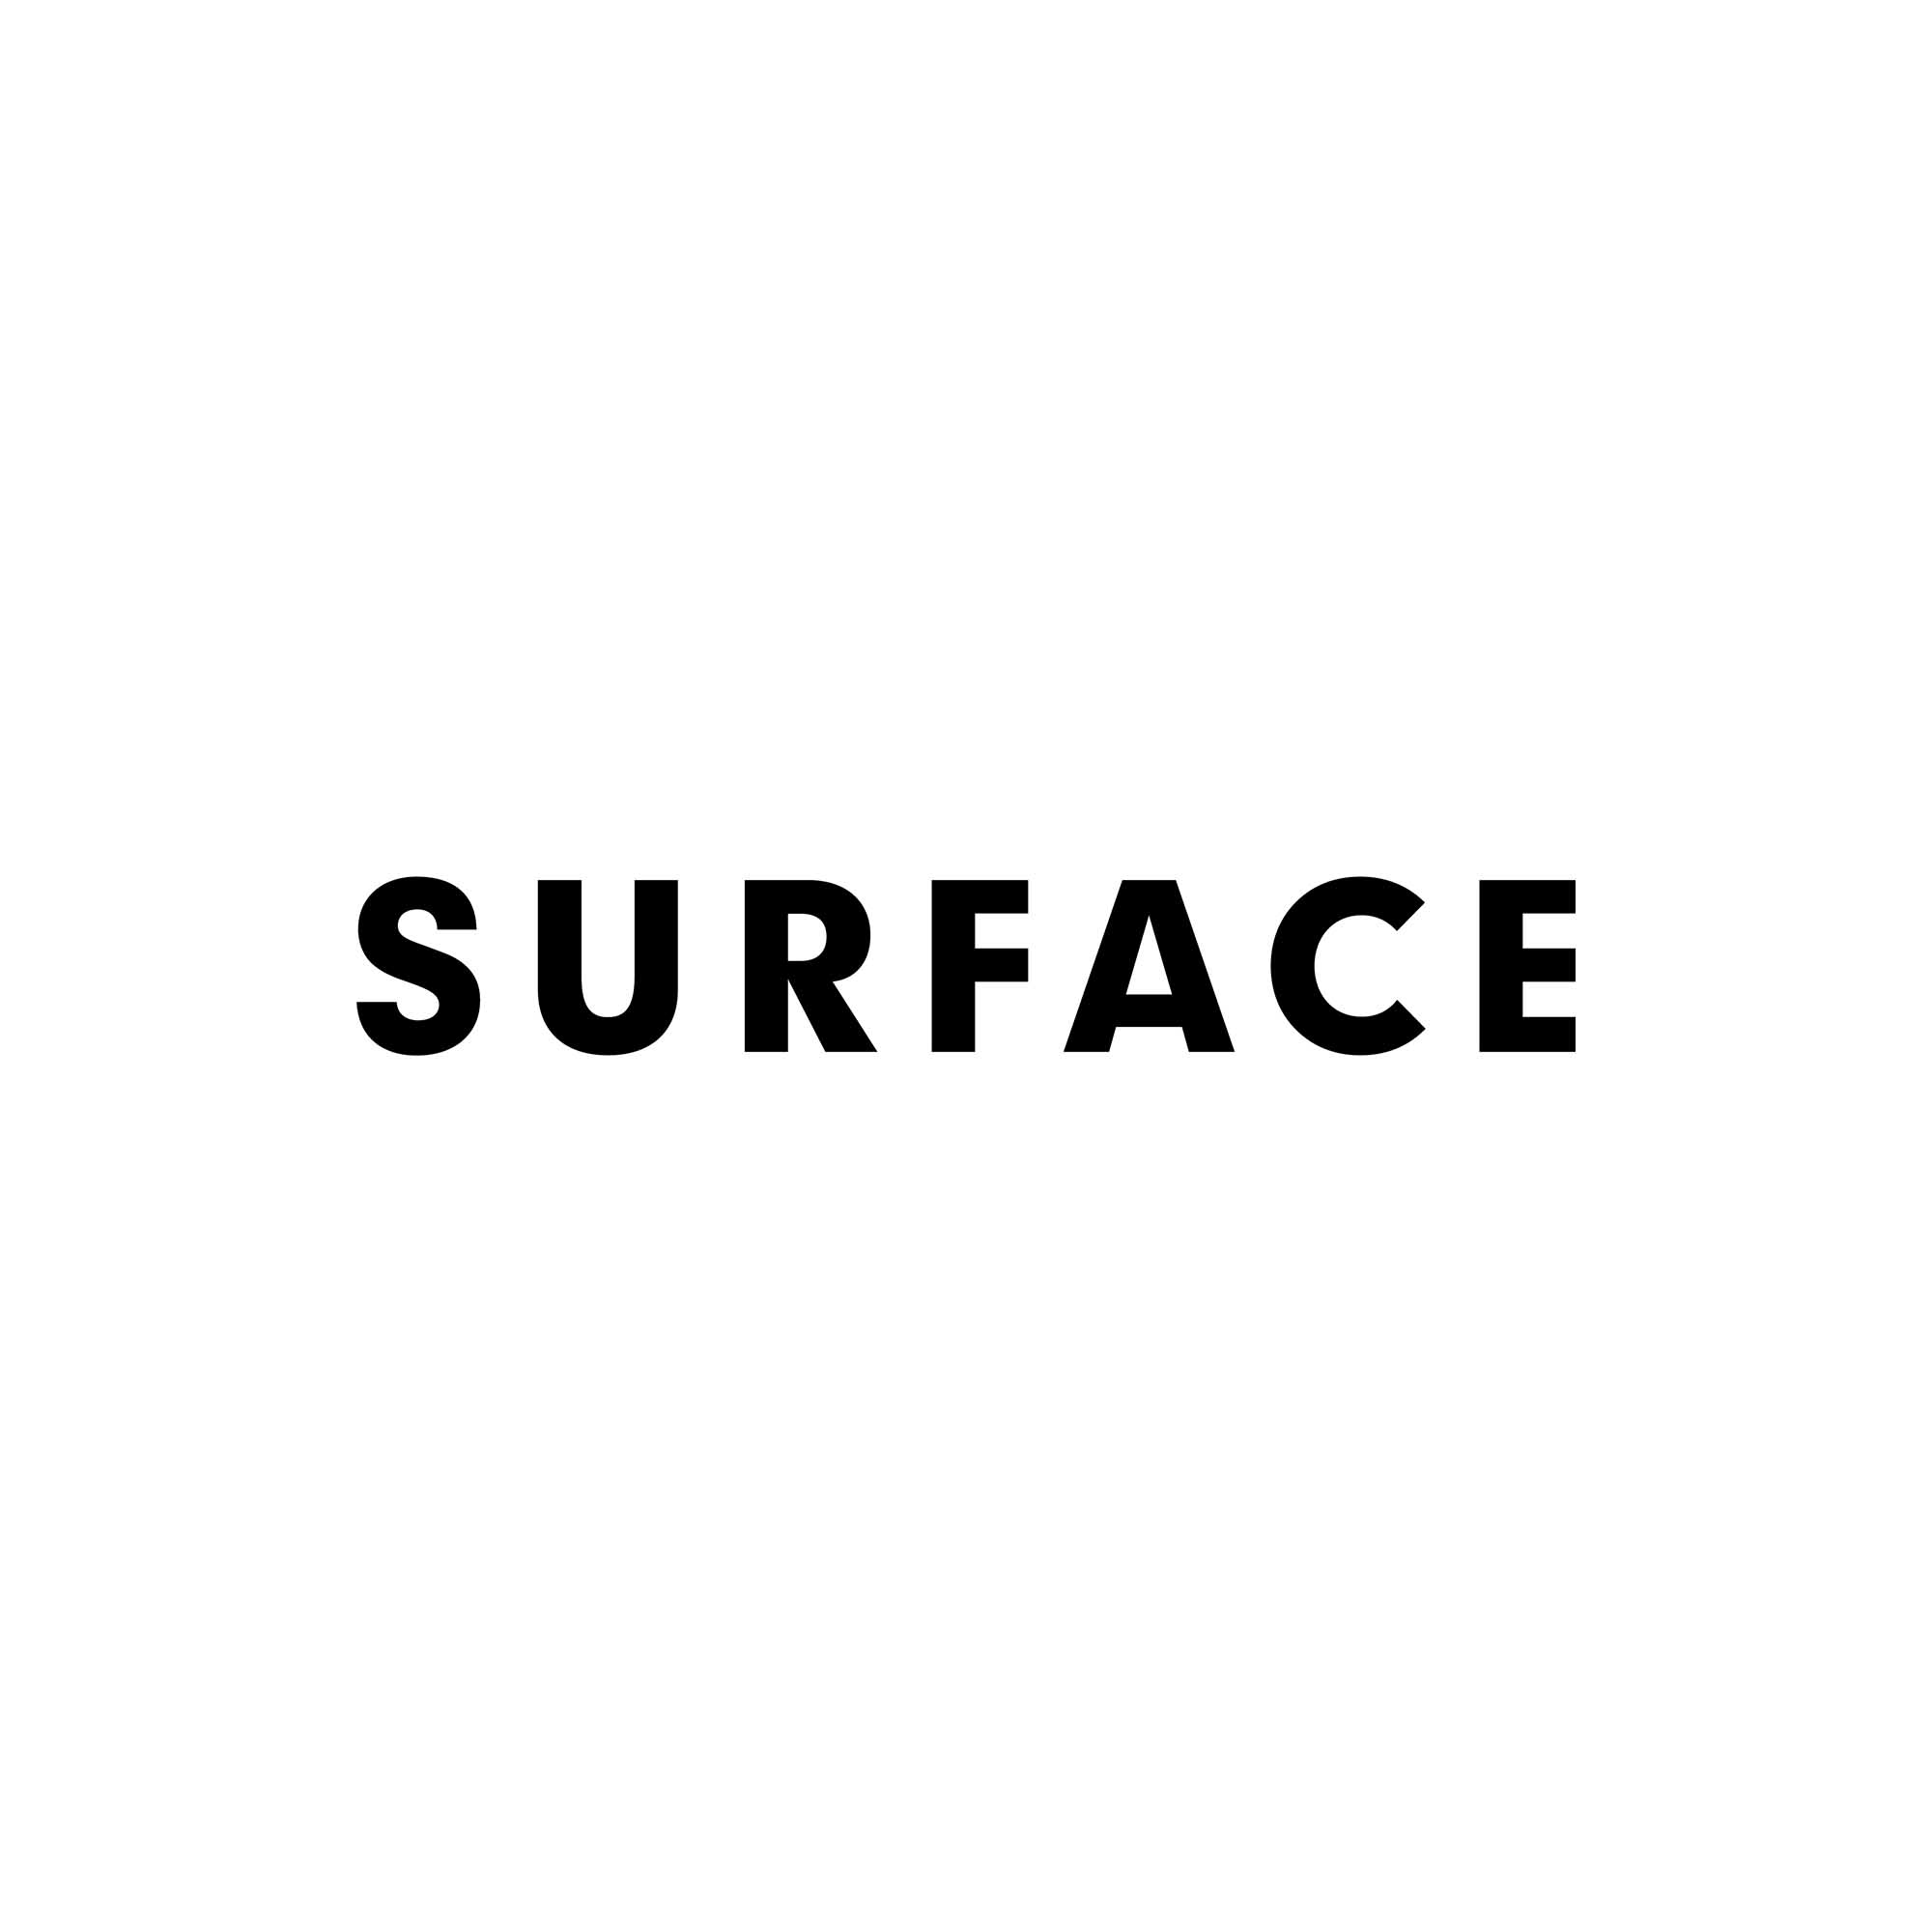 surface square.jpg